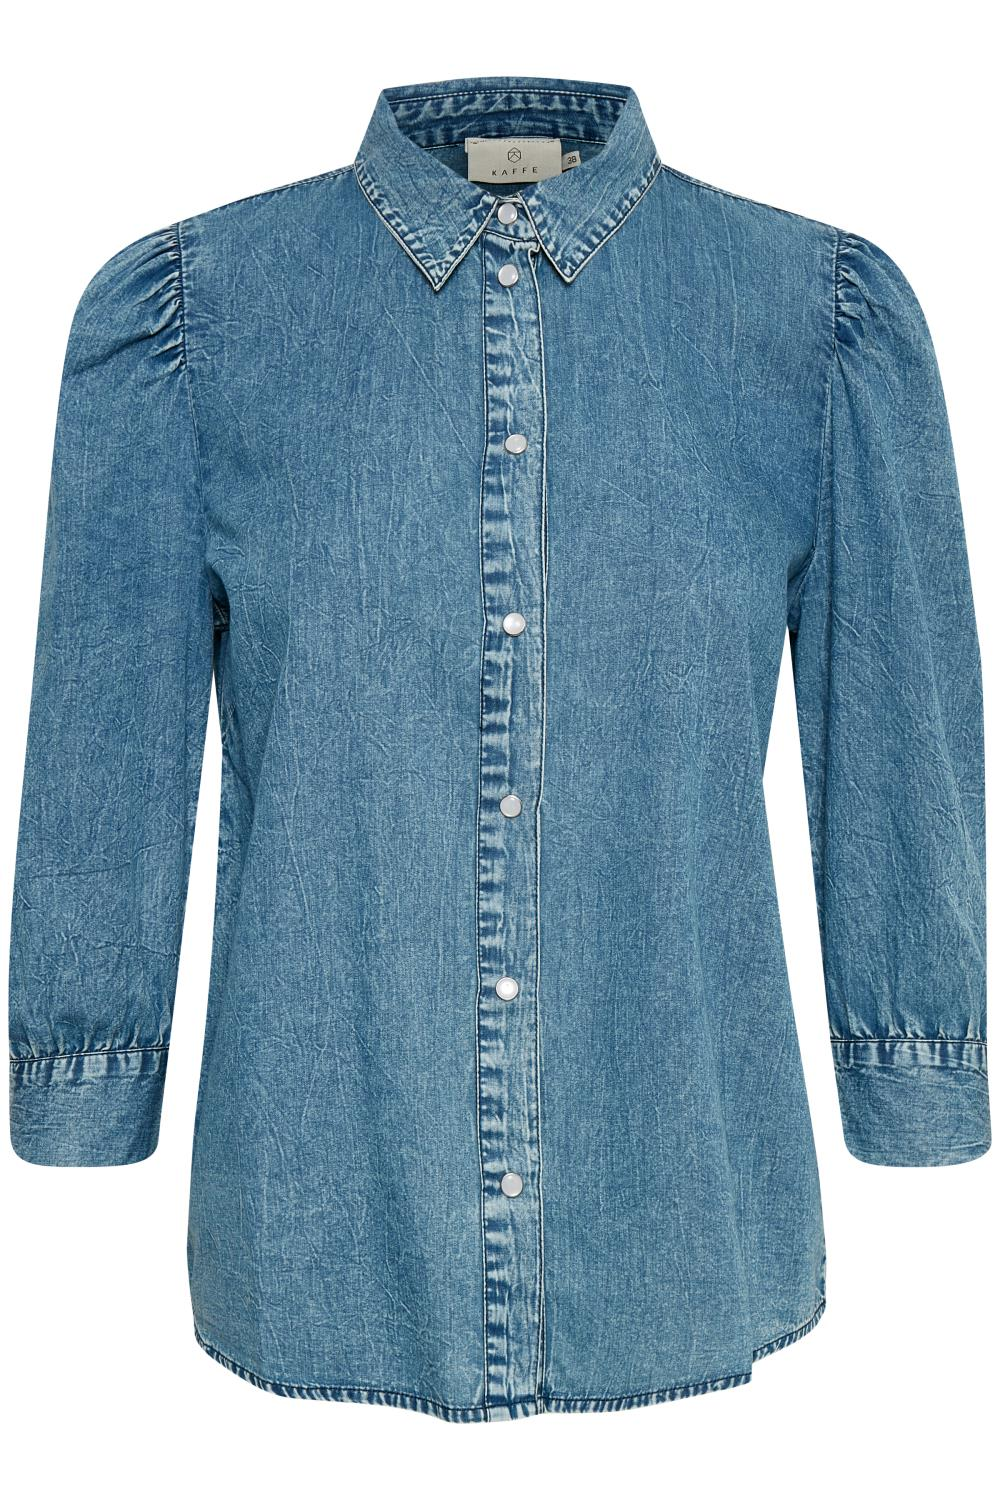 Kaffe Marie Shirt, washed denim